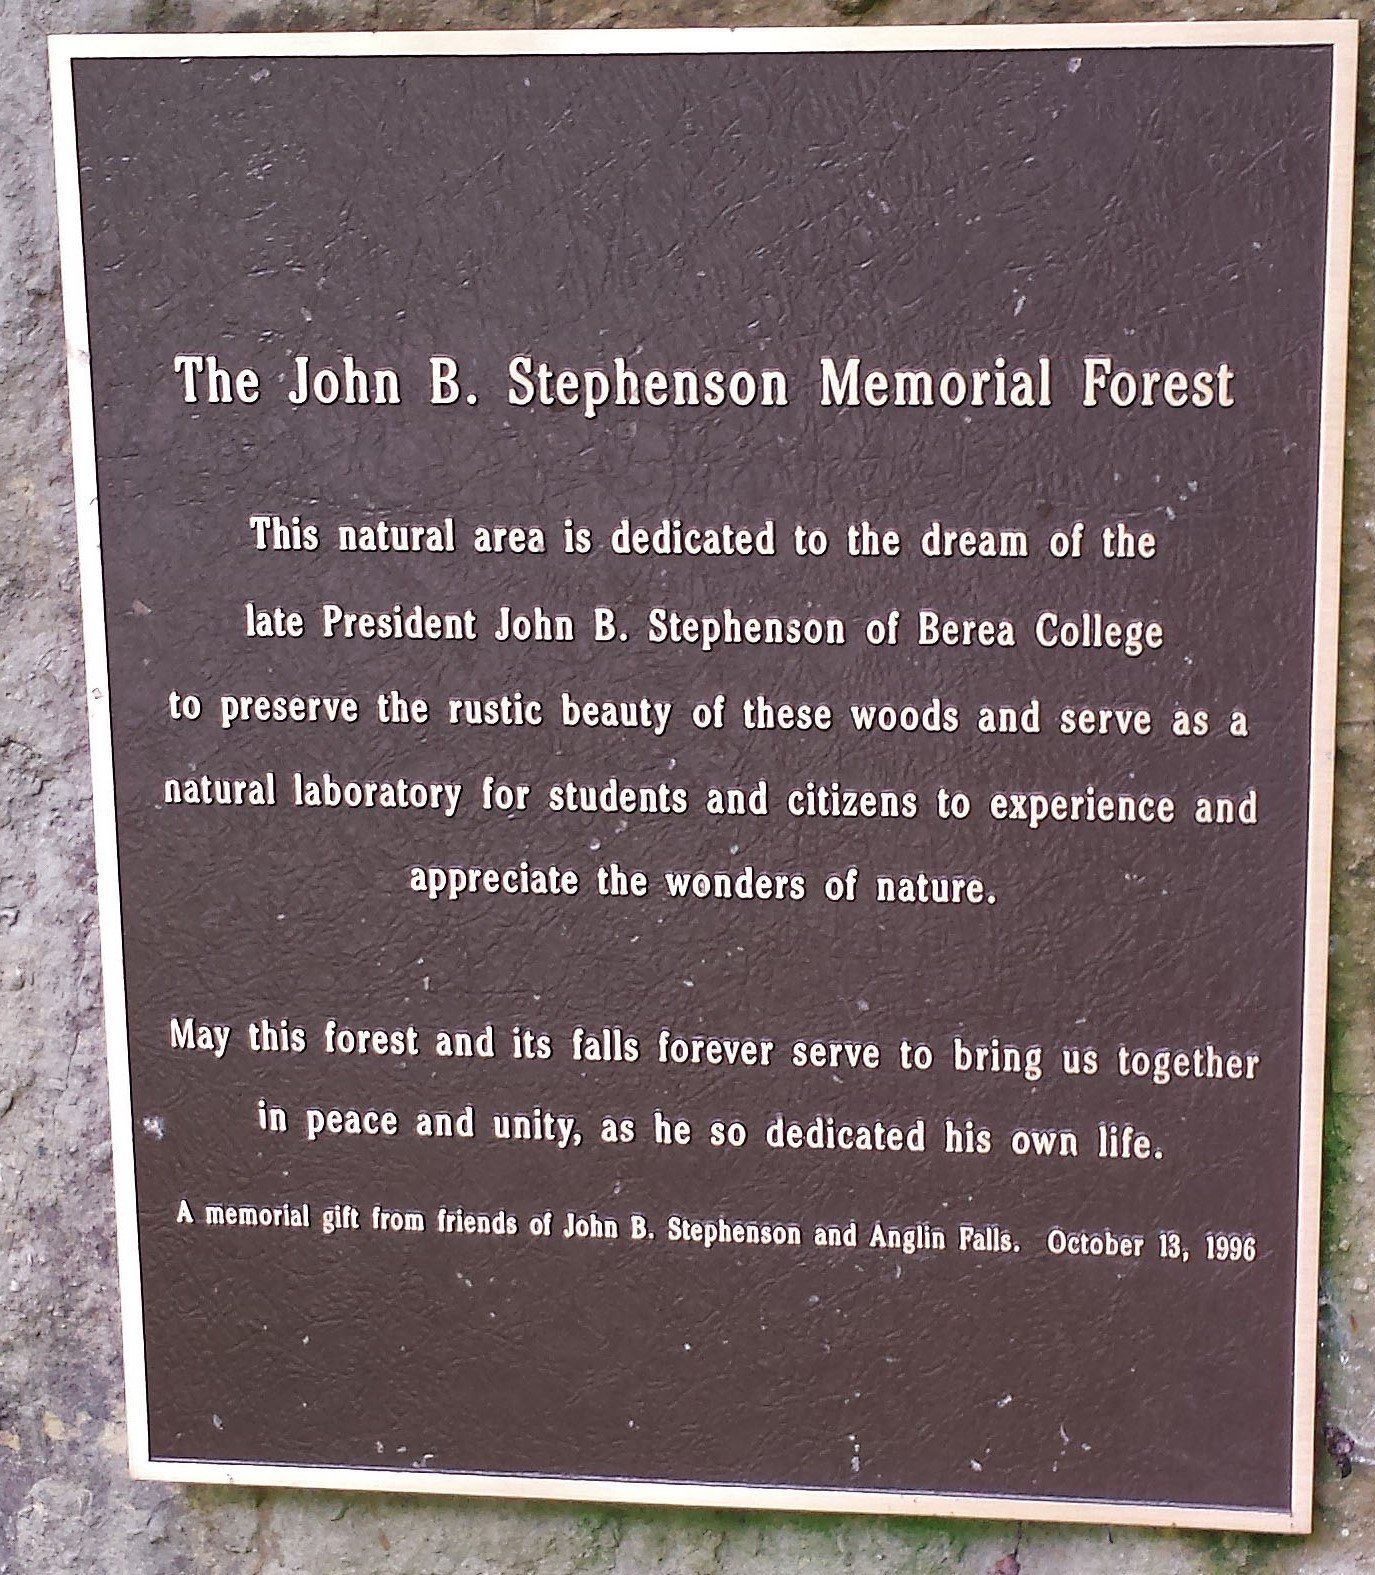 Plaque marking the beginning of The John B Stephenson Memorial Forest